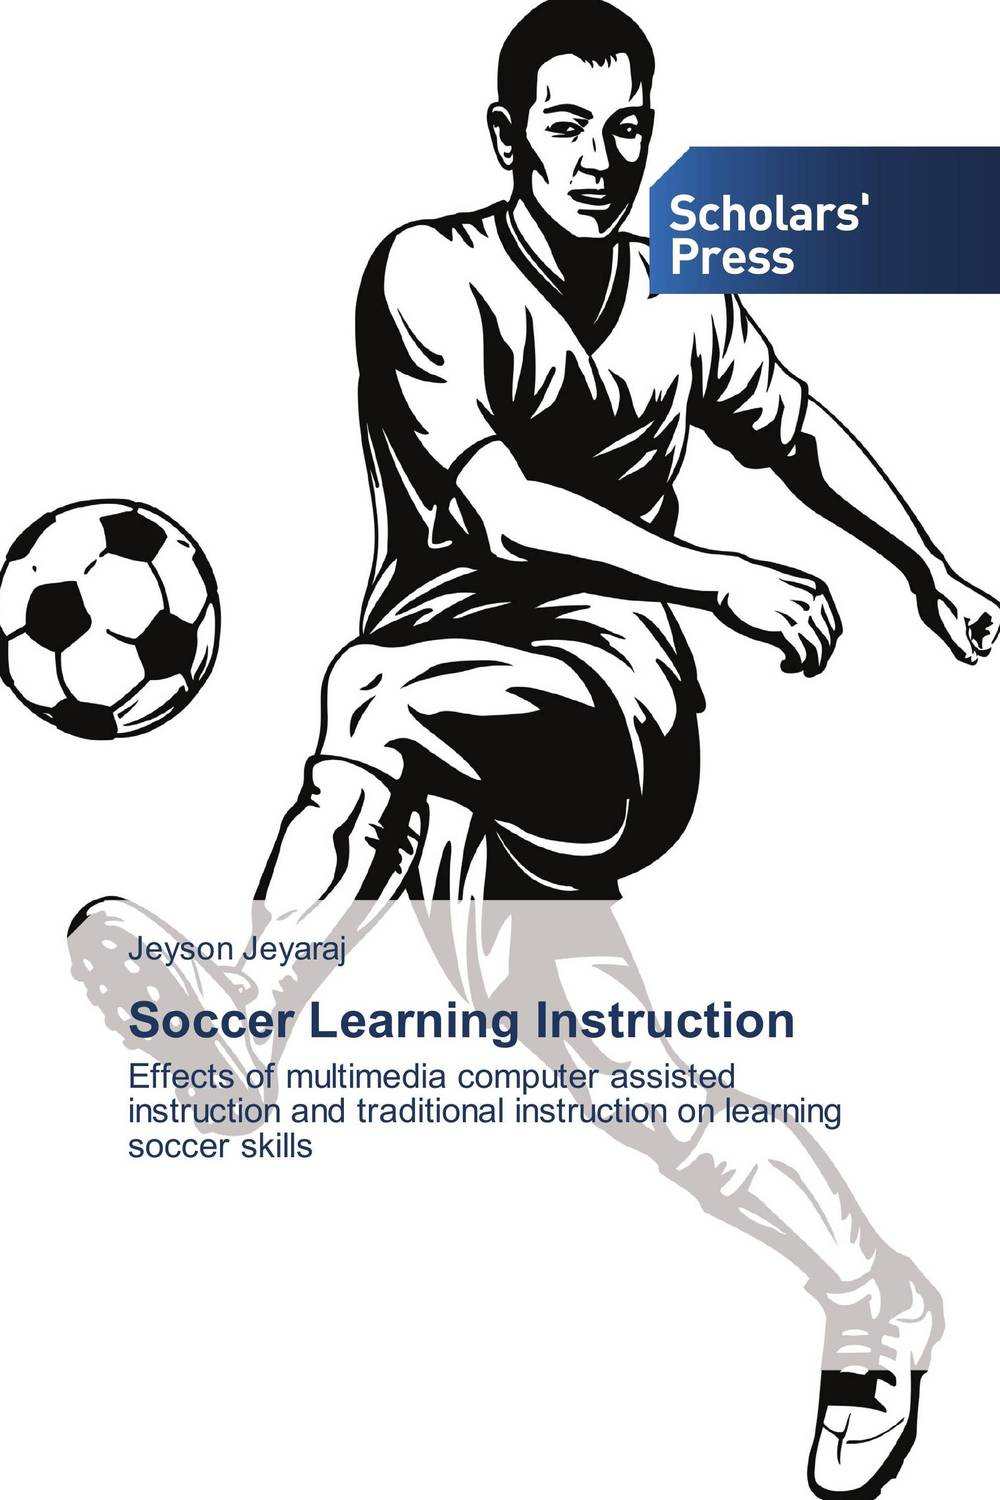 Soccer Learning Instruction peter stone layered learning in multiagent systems – a winning approach to robotic soccer